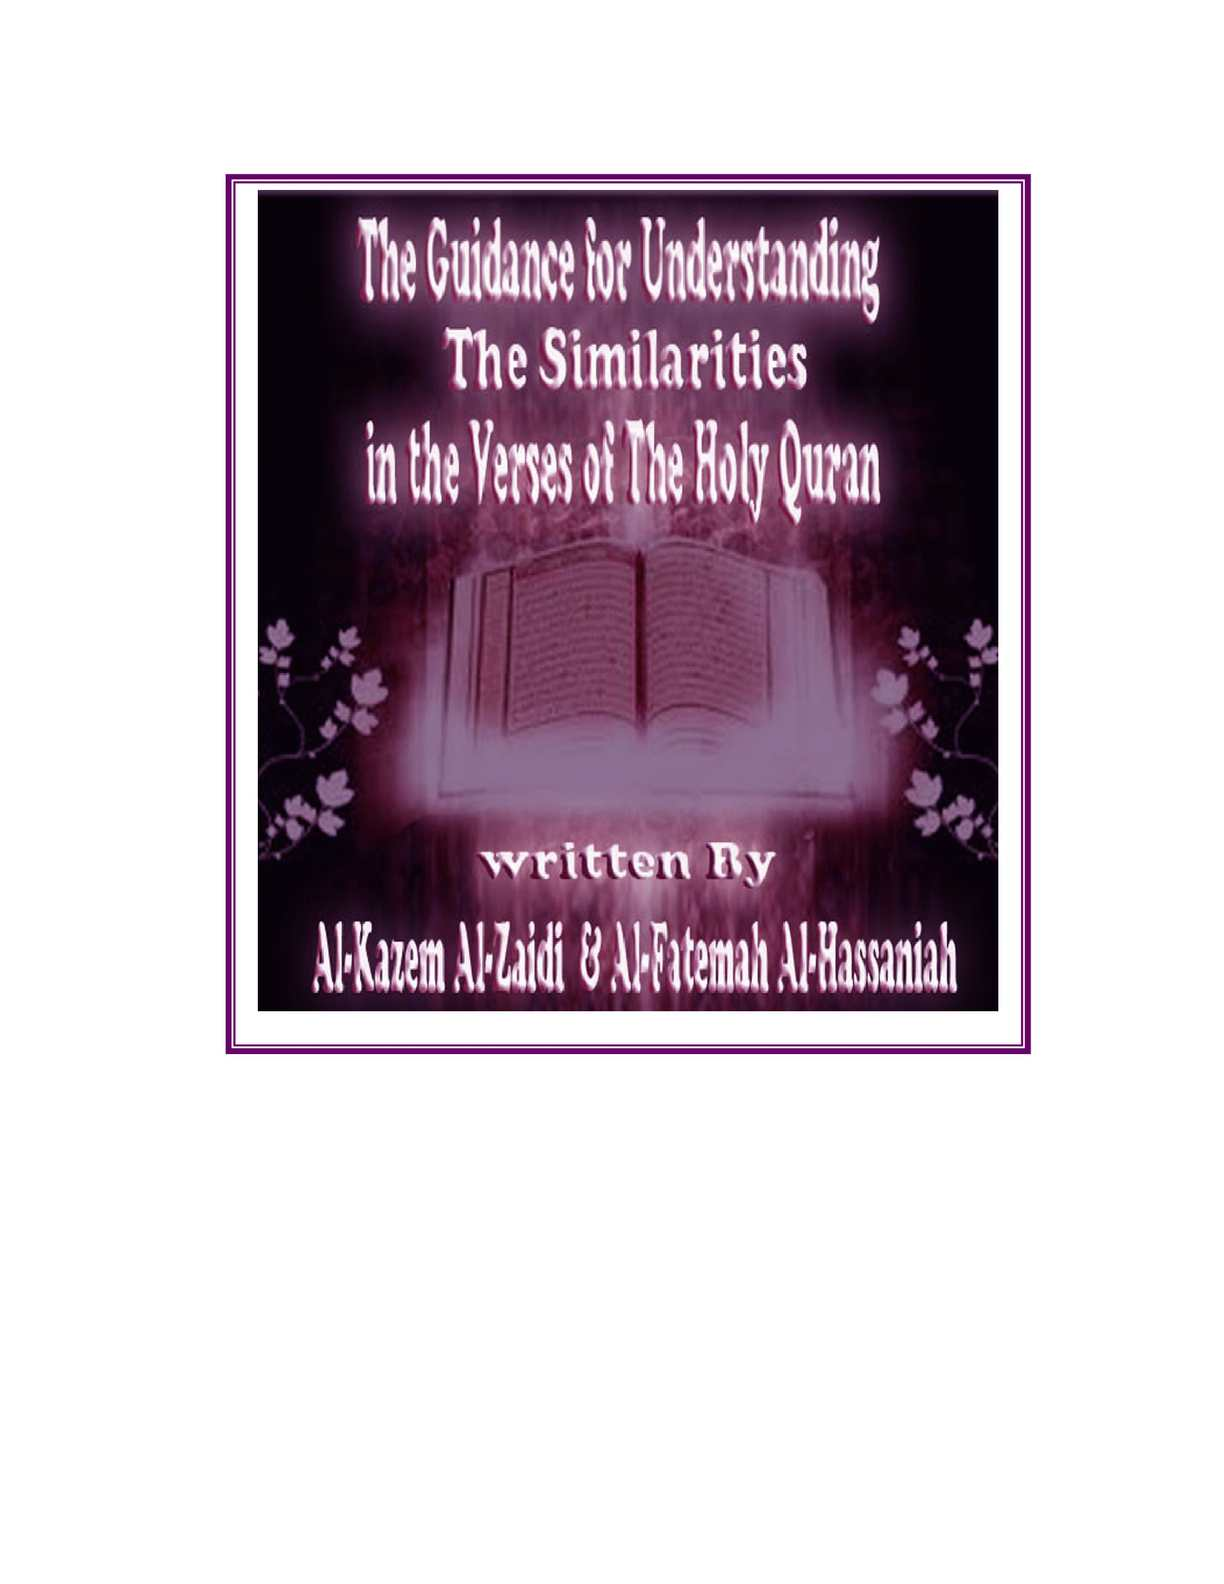 The Guidance for Understanding The Similarities in the Verses of The Holy Quran